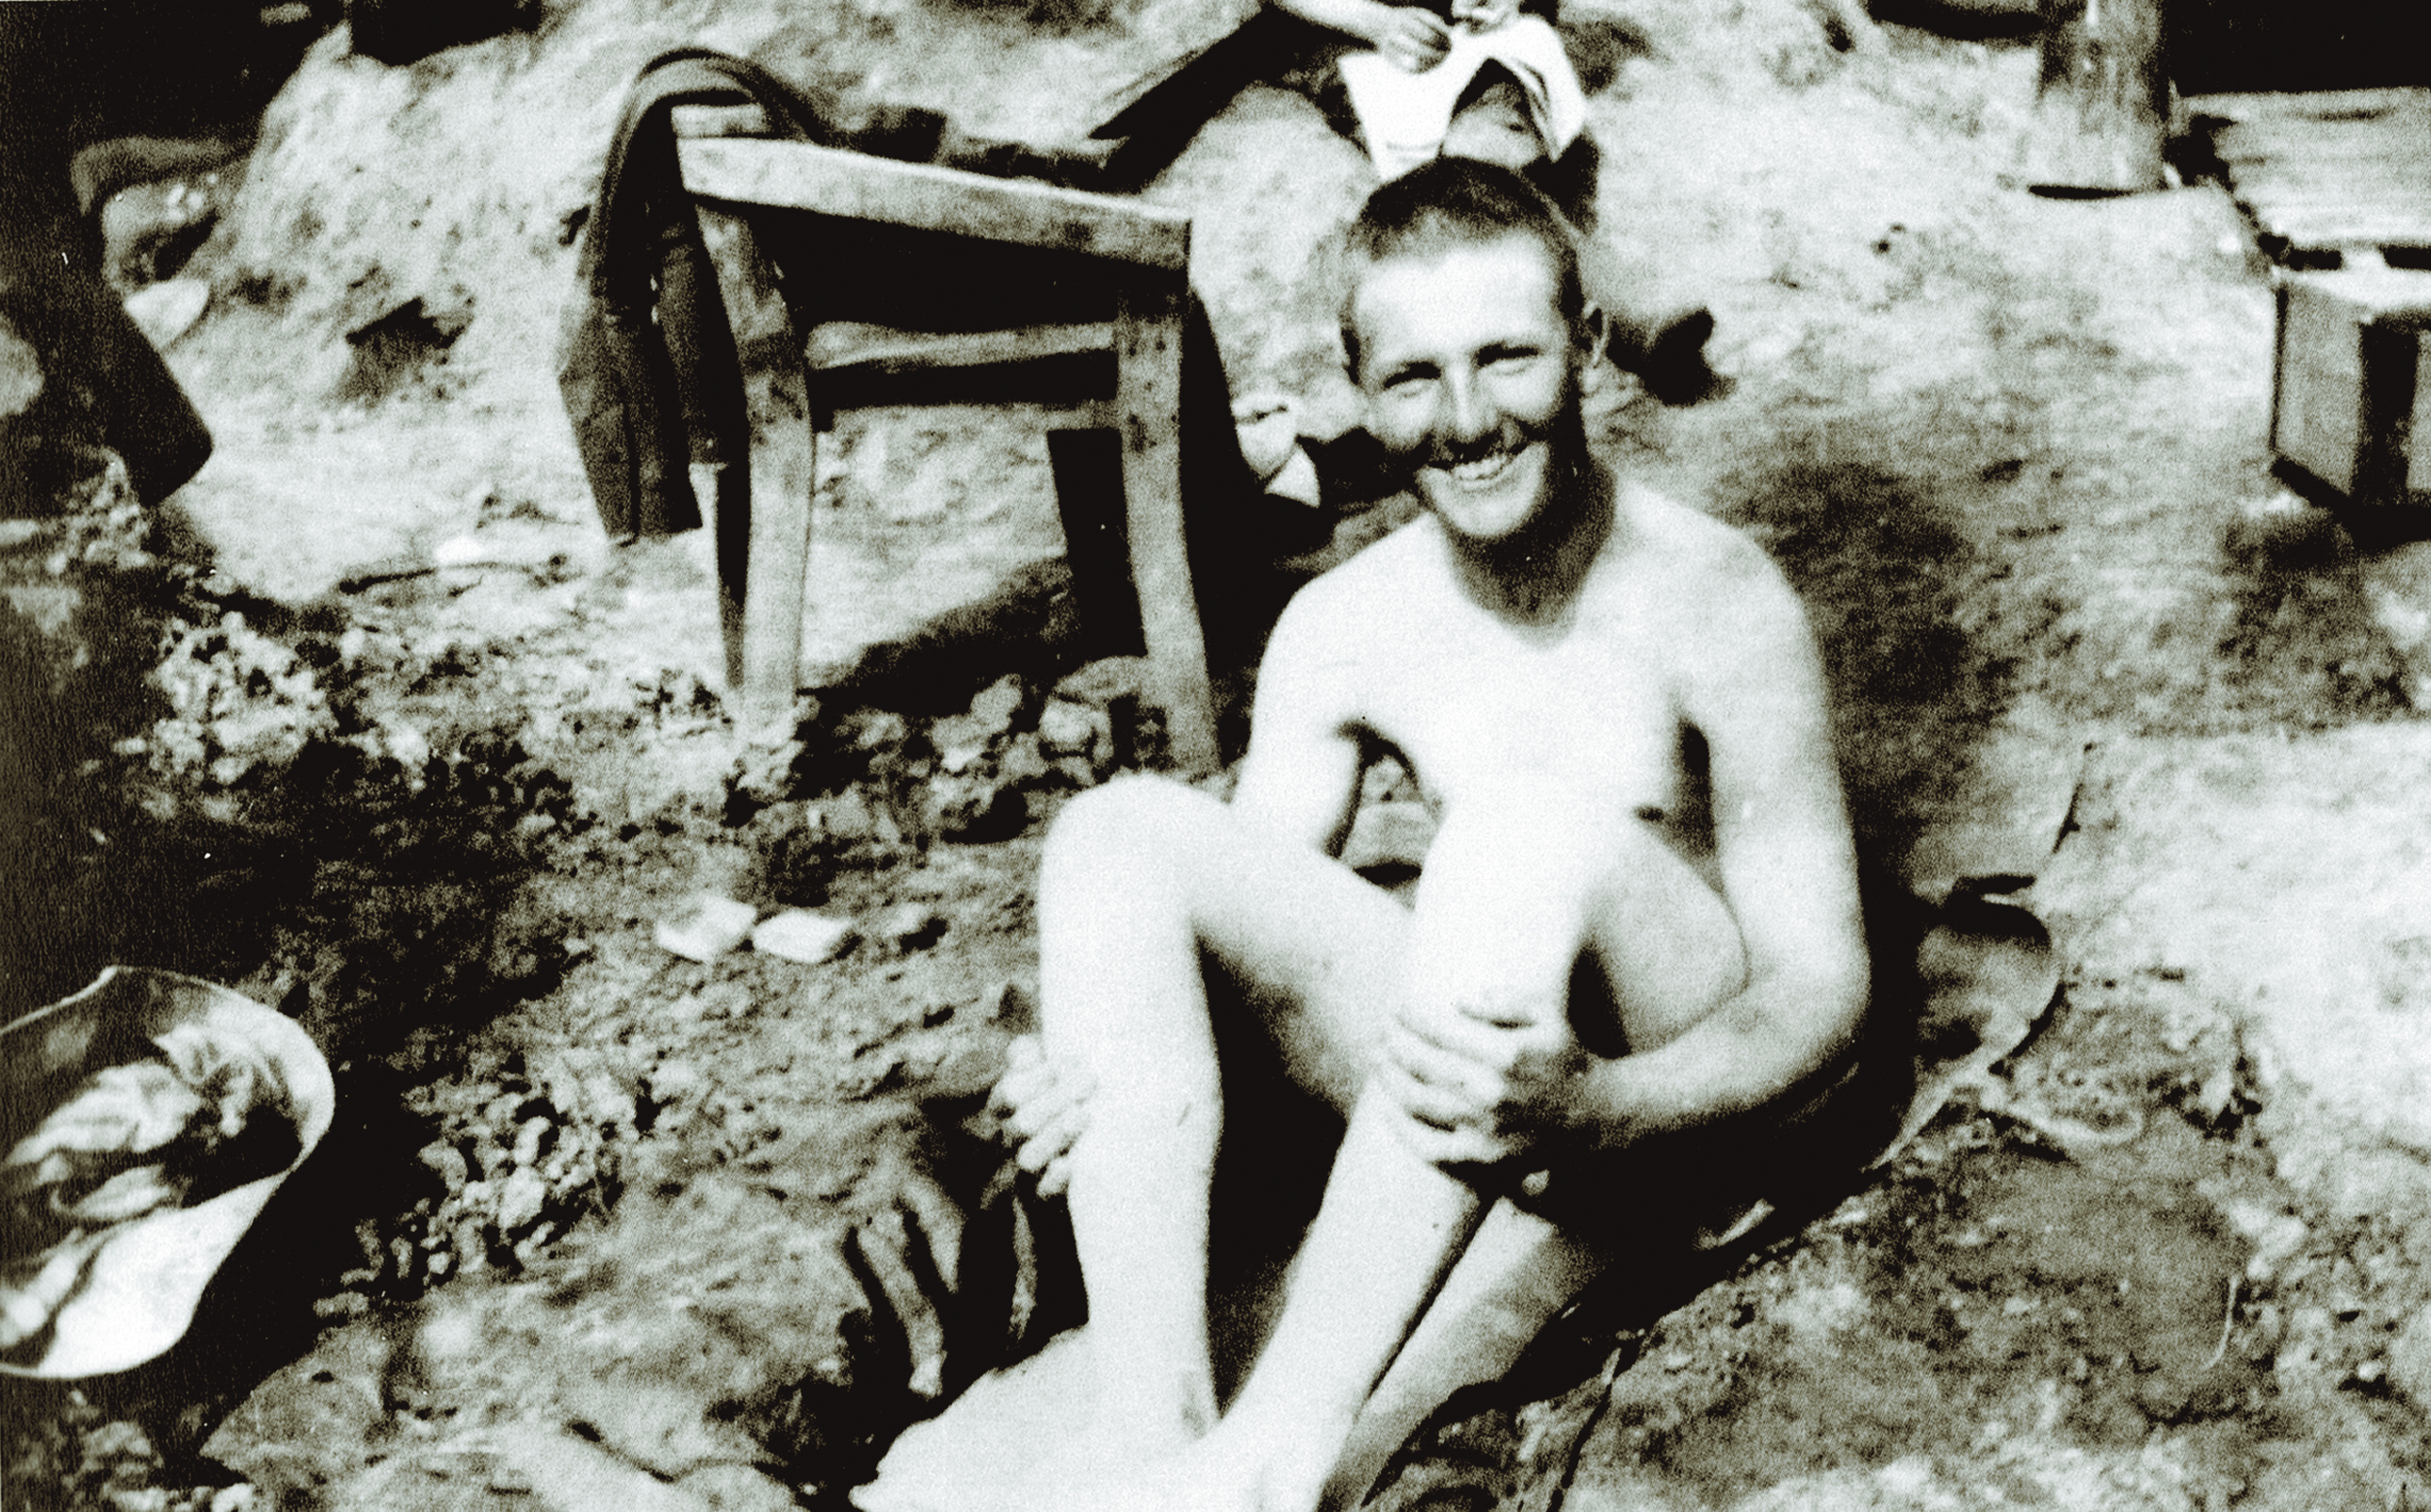 Life in the trenches was indescribably dirty and dangerous. Most of the time at the front was spent in muddy, cold wet trenches.. This delightful shot of a bather indicates that morale could be high at times, especially during periods of little gunfire. In the background, a fellow soldier is seen reading a trench newspaper. (Canadian War Museum, 19780093-0140)